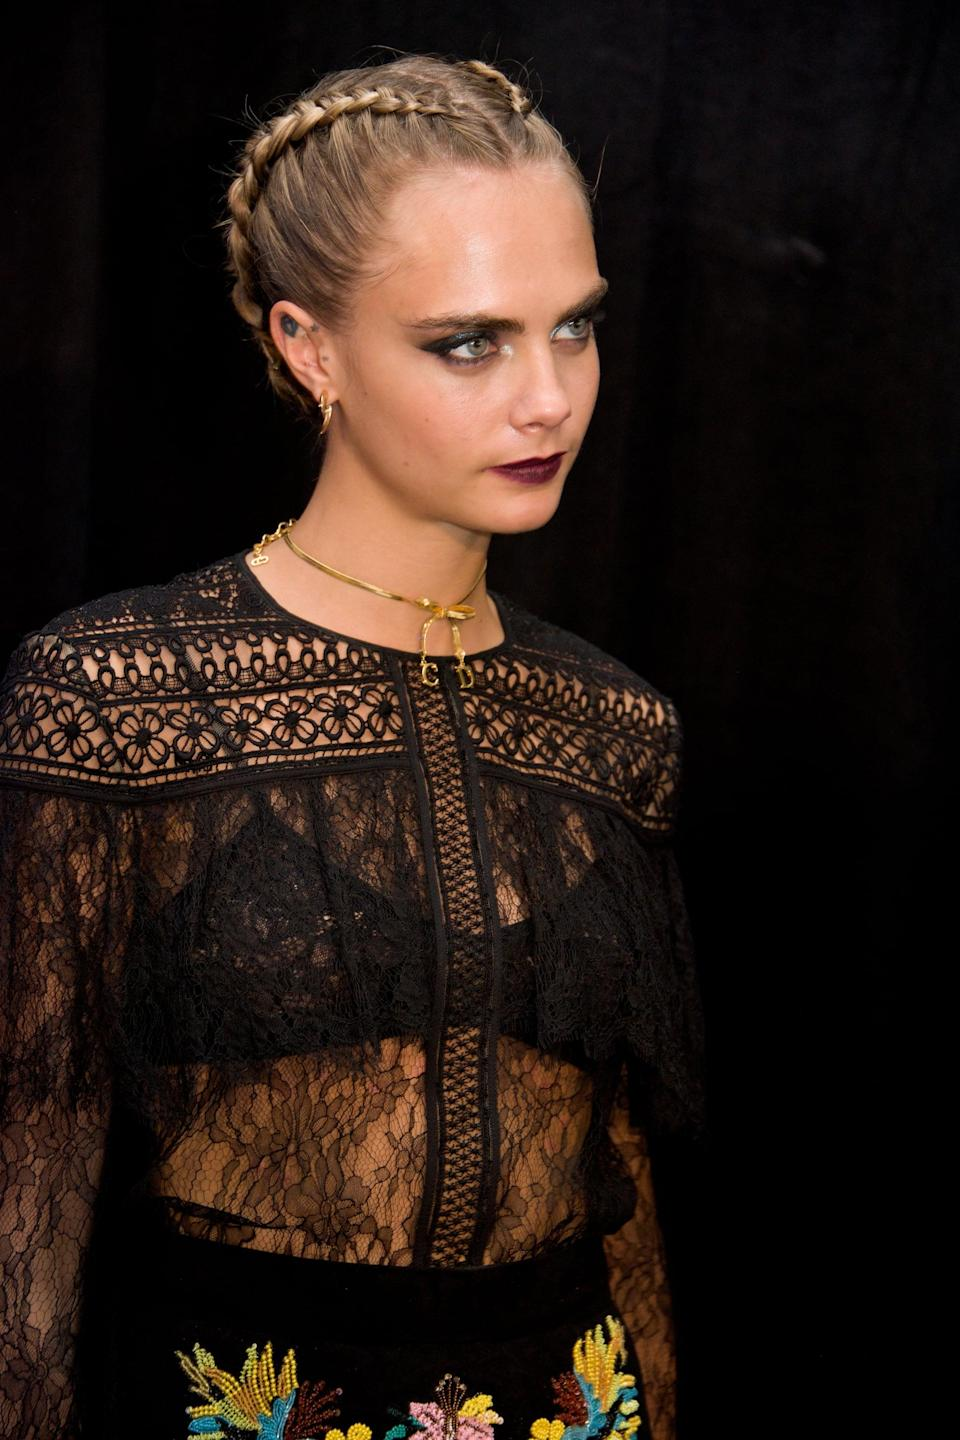 <p>Delevingne made a case for neat dutch braids at the <strong>Suicide Squad</strong> Press Conference - worn with a middle part and a striking bordeaux-colored lipstick.</p>